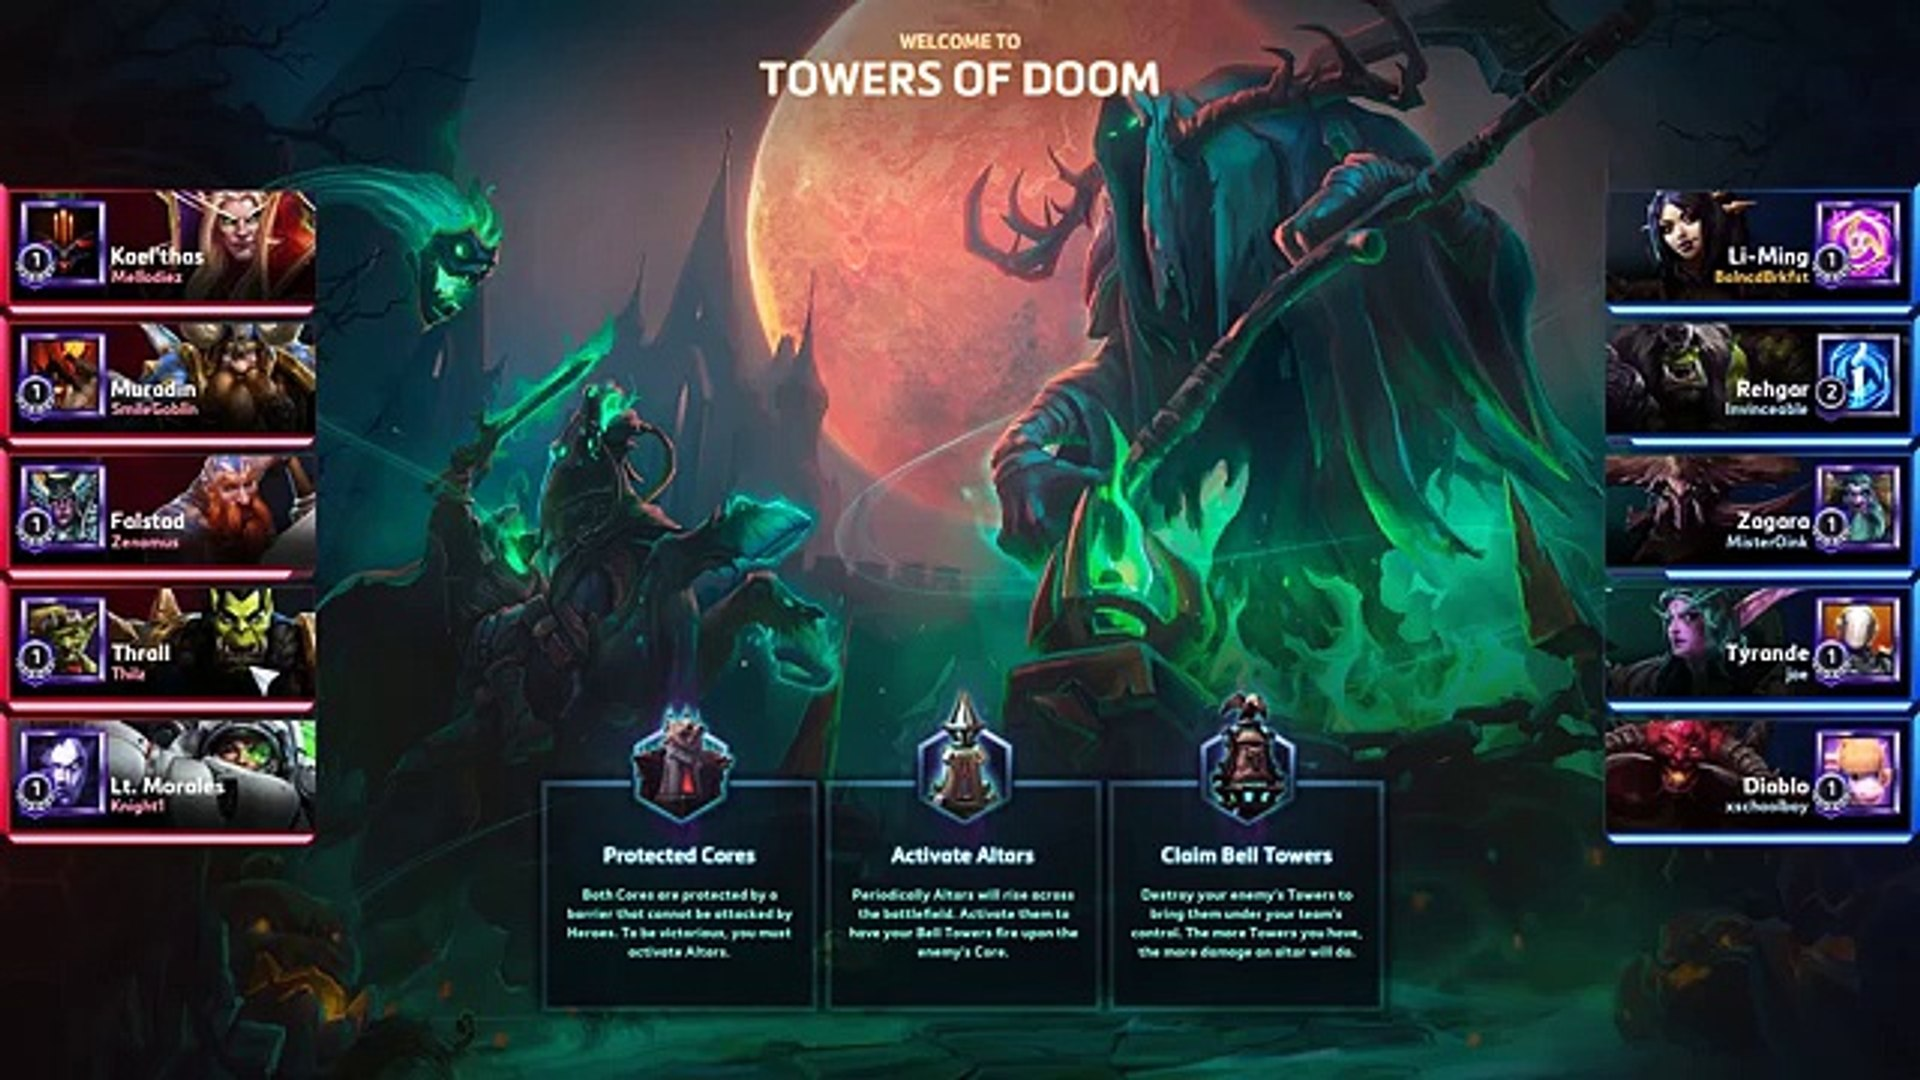 Heroes Of The Storm Ranked Gameplay Li Ming Wizard Endless Heavy Damage Build